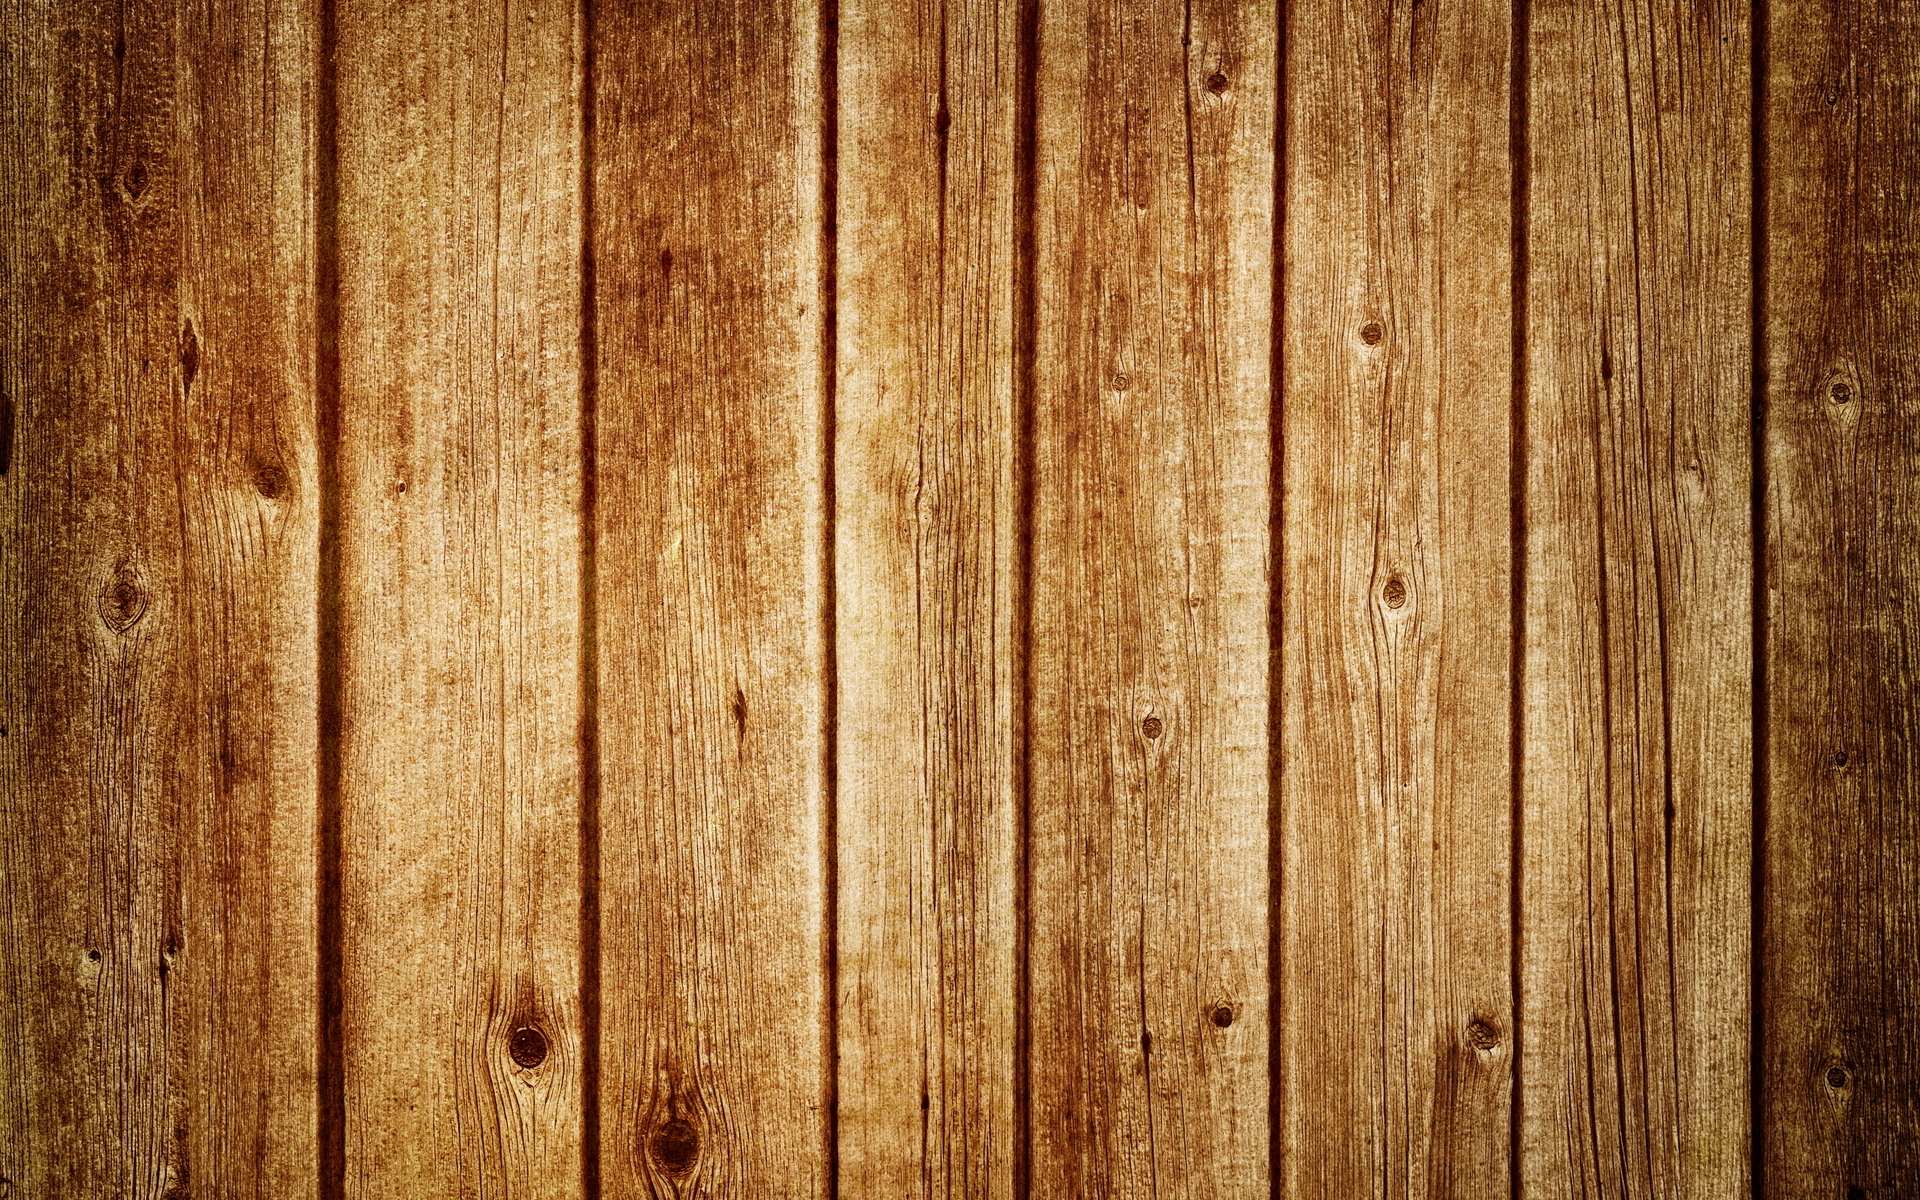 Board Wood Tree Macro HD wallpapers   Board Wood Tree Macro 1920x1200